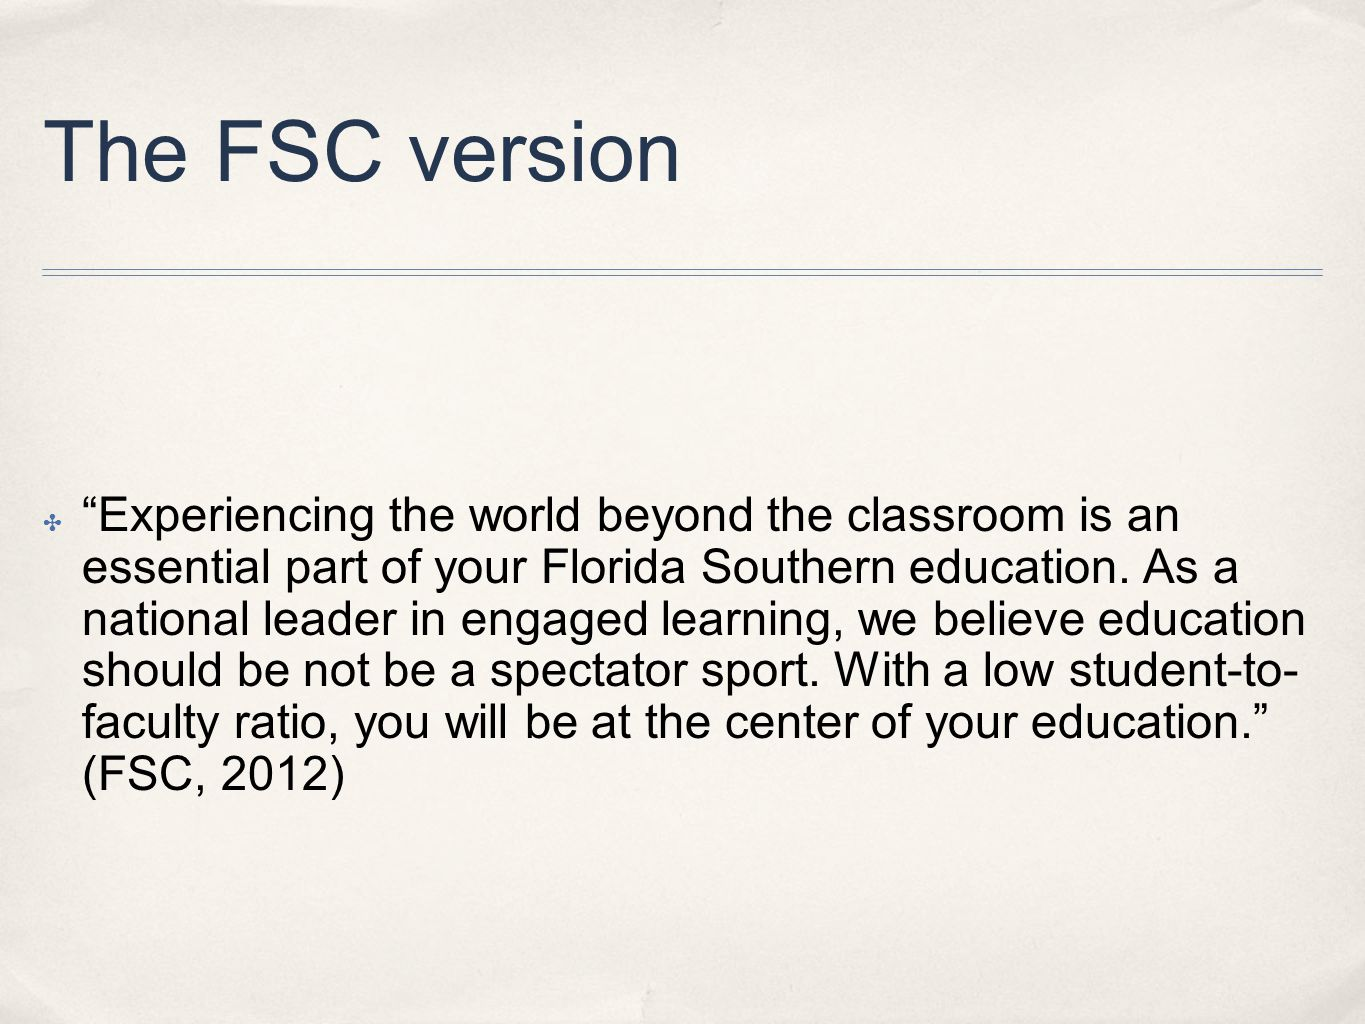 ✤ We are nationally recognized for our focus on 'engaged learning'.